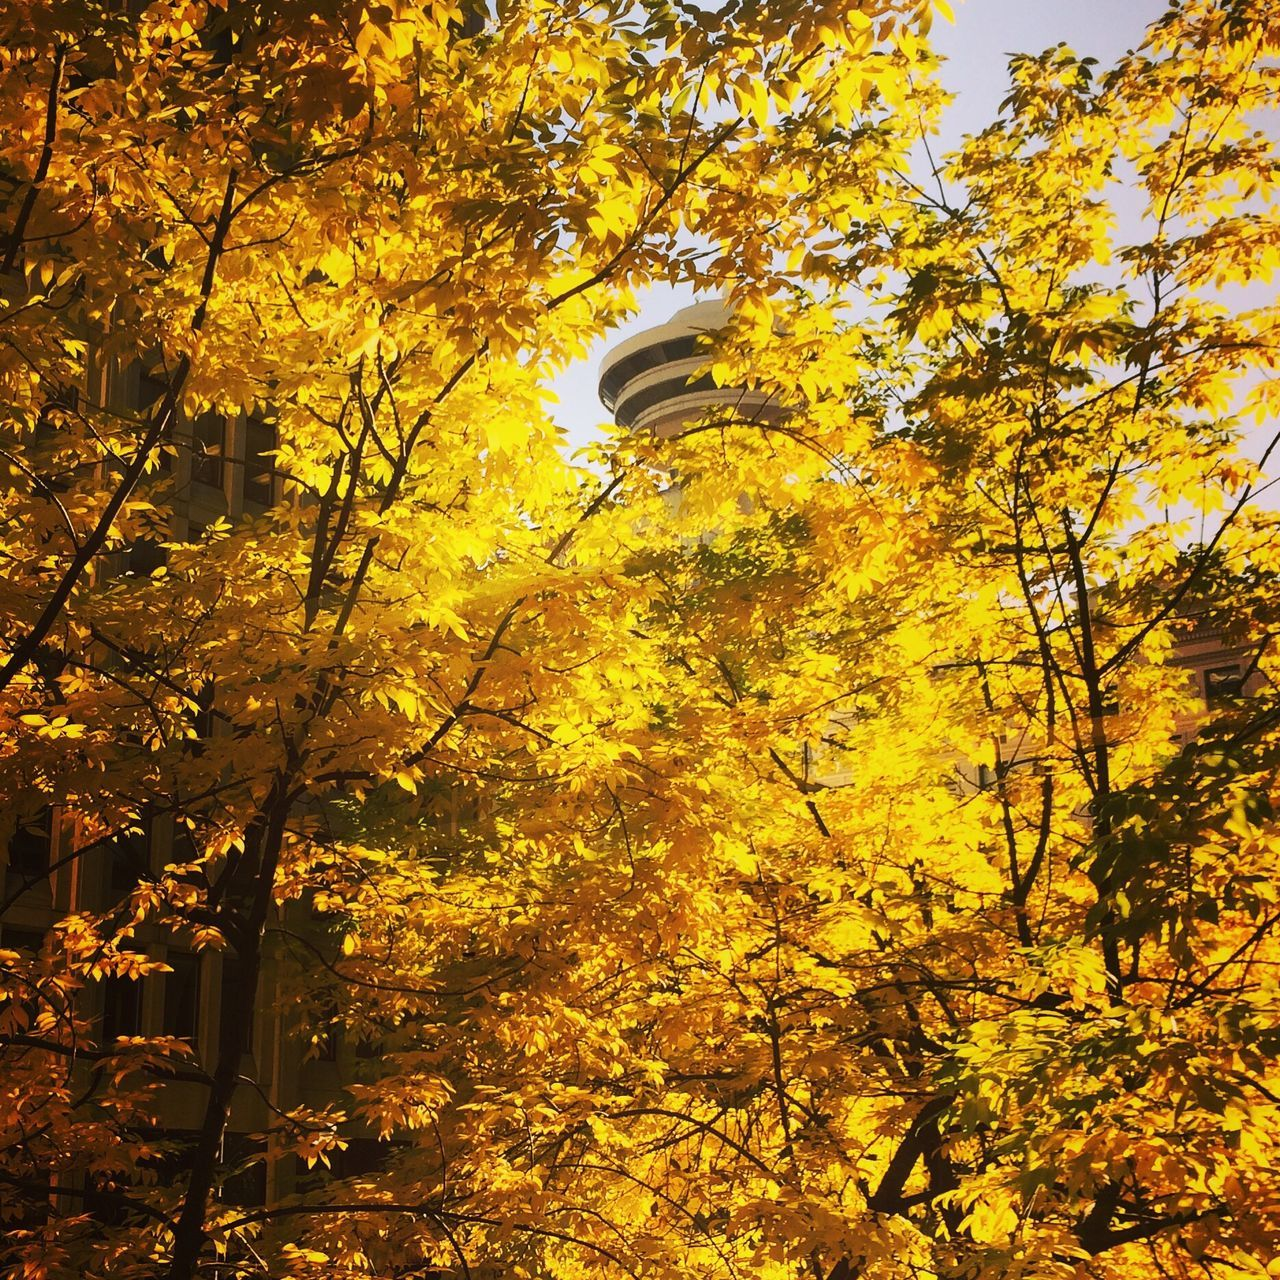 architecture, autumn, building exterior, built structure, tree, low angle view, leaf, change, growth, yellow, no people, outdoors, nature, beauty in nature, branch, day, city, sky